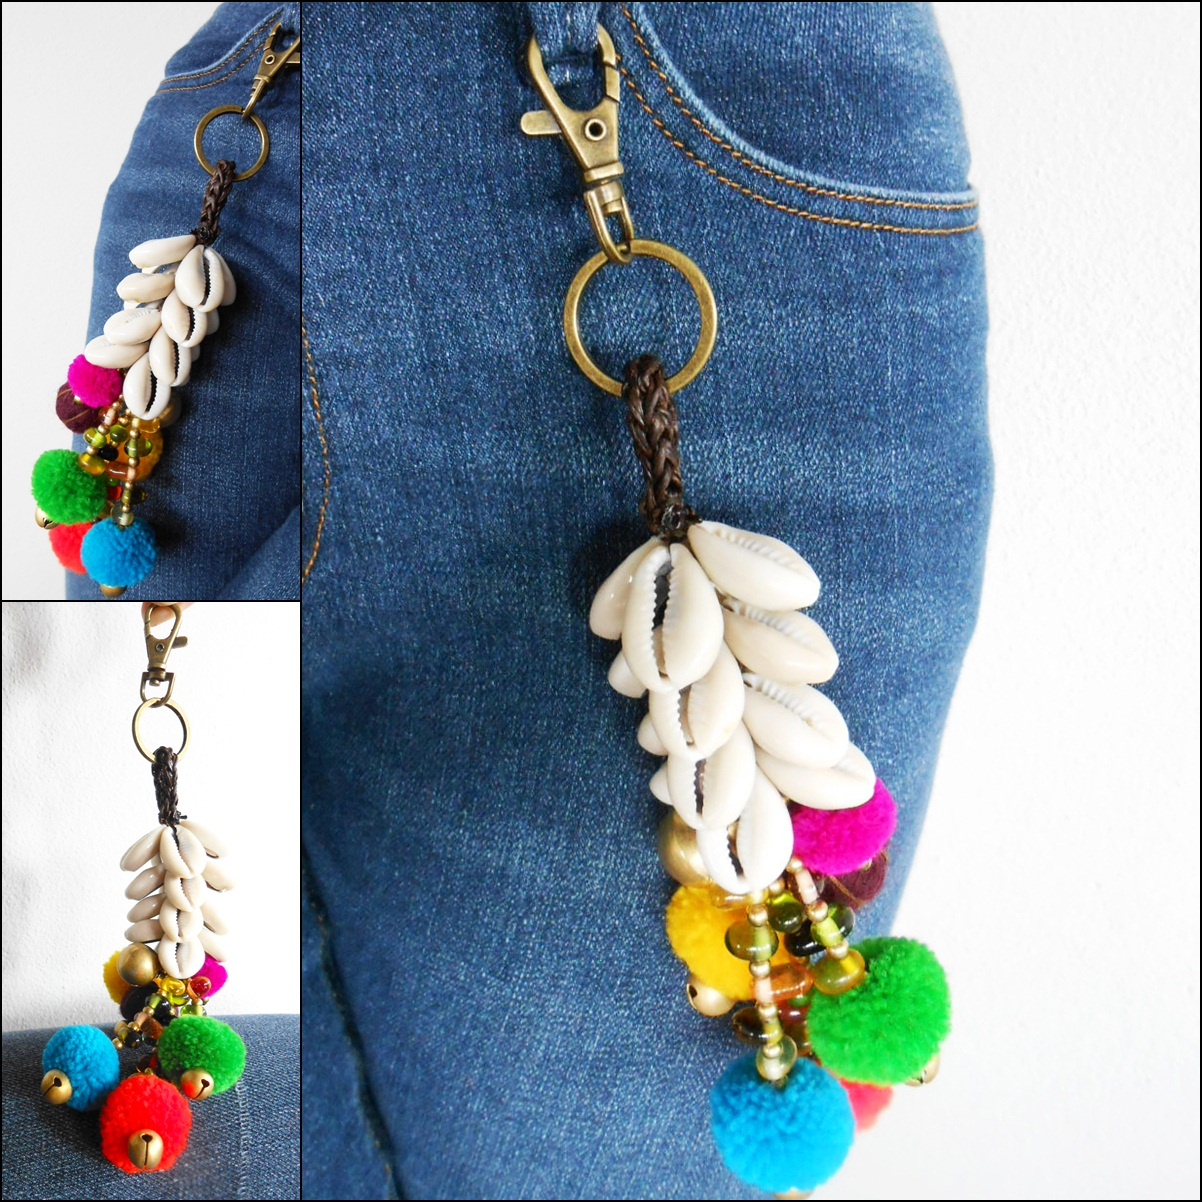 Hmong Shell Keychain with Colorful Pom poms & Brass Bells Holder, Zip Pull  Bag Accessories Handmade  (AC1066) from Golden World